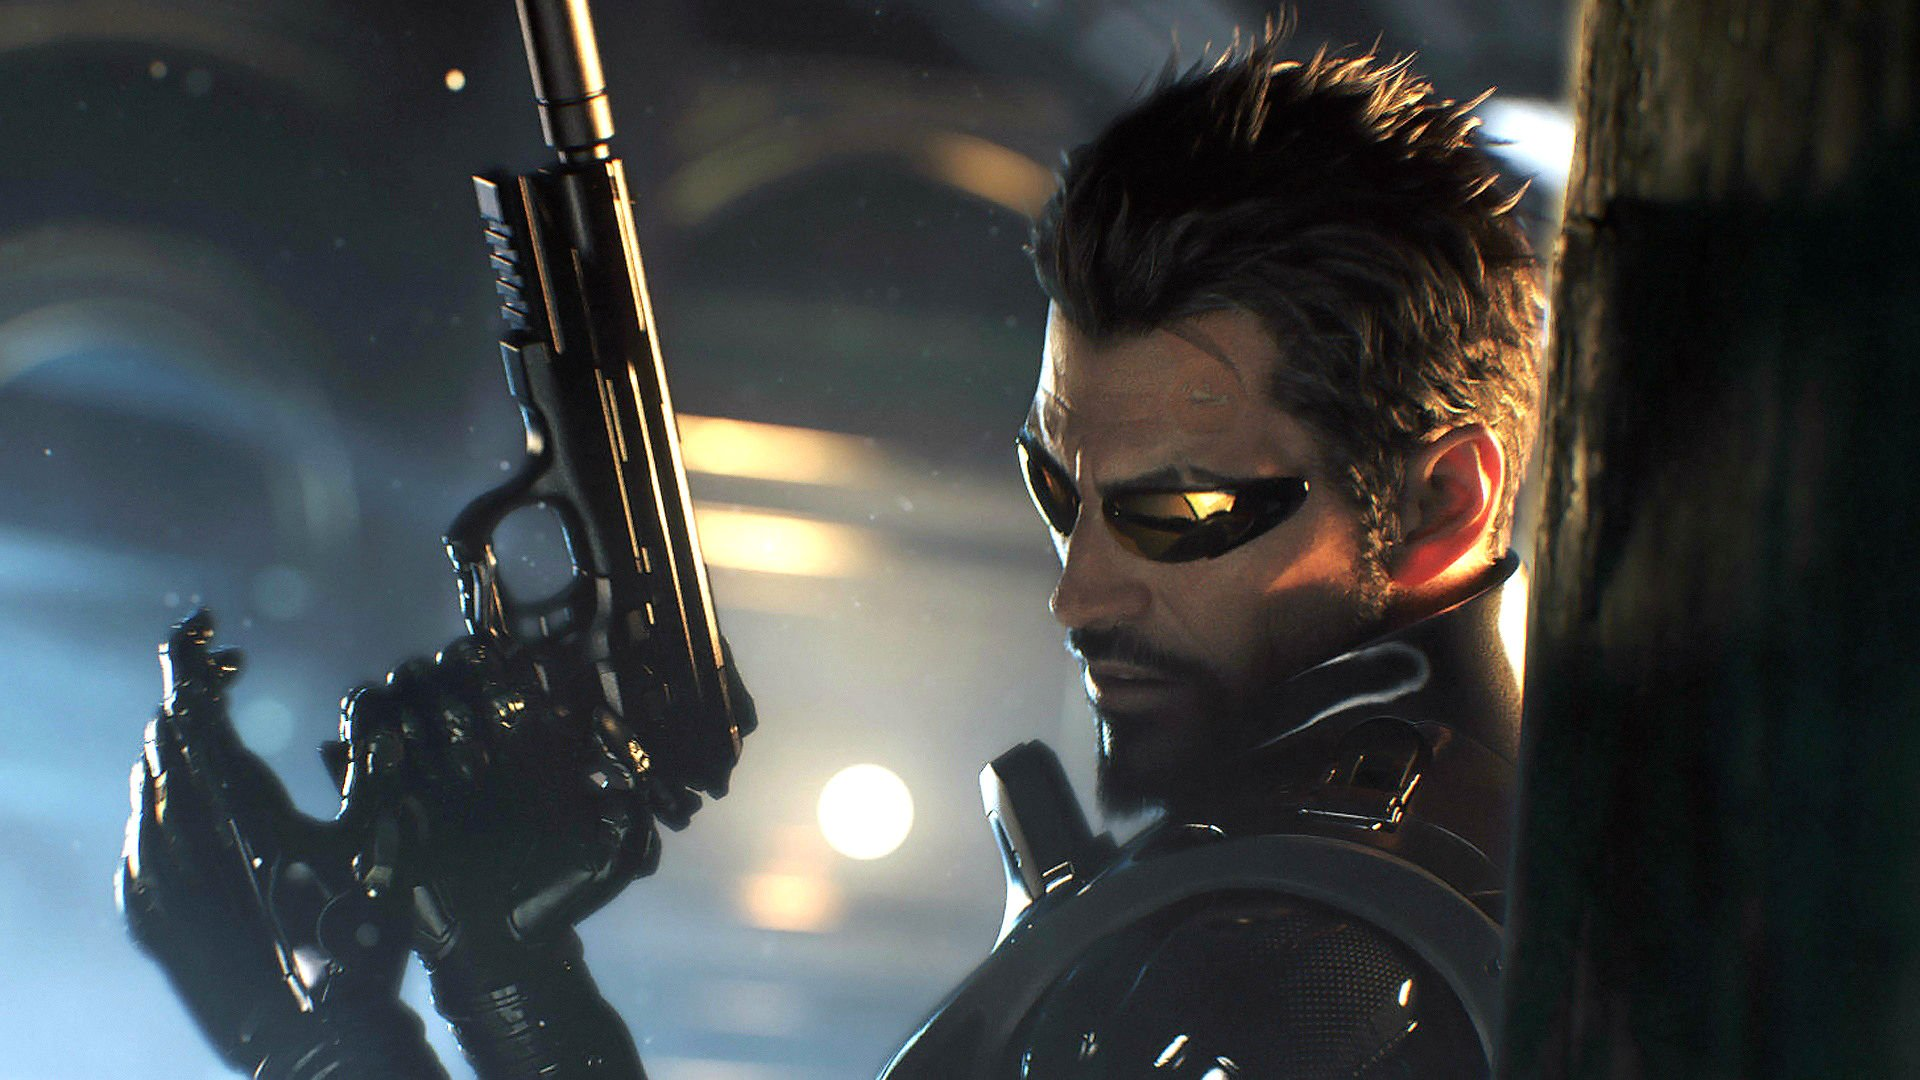 The game Deus Ex: Mankind Divided wallpaper for download